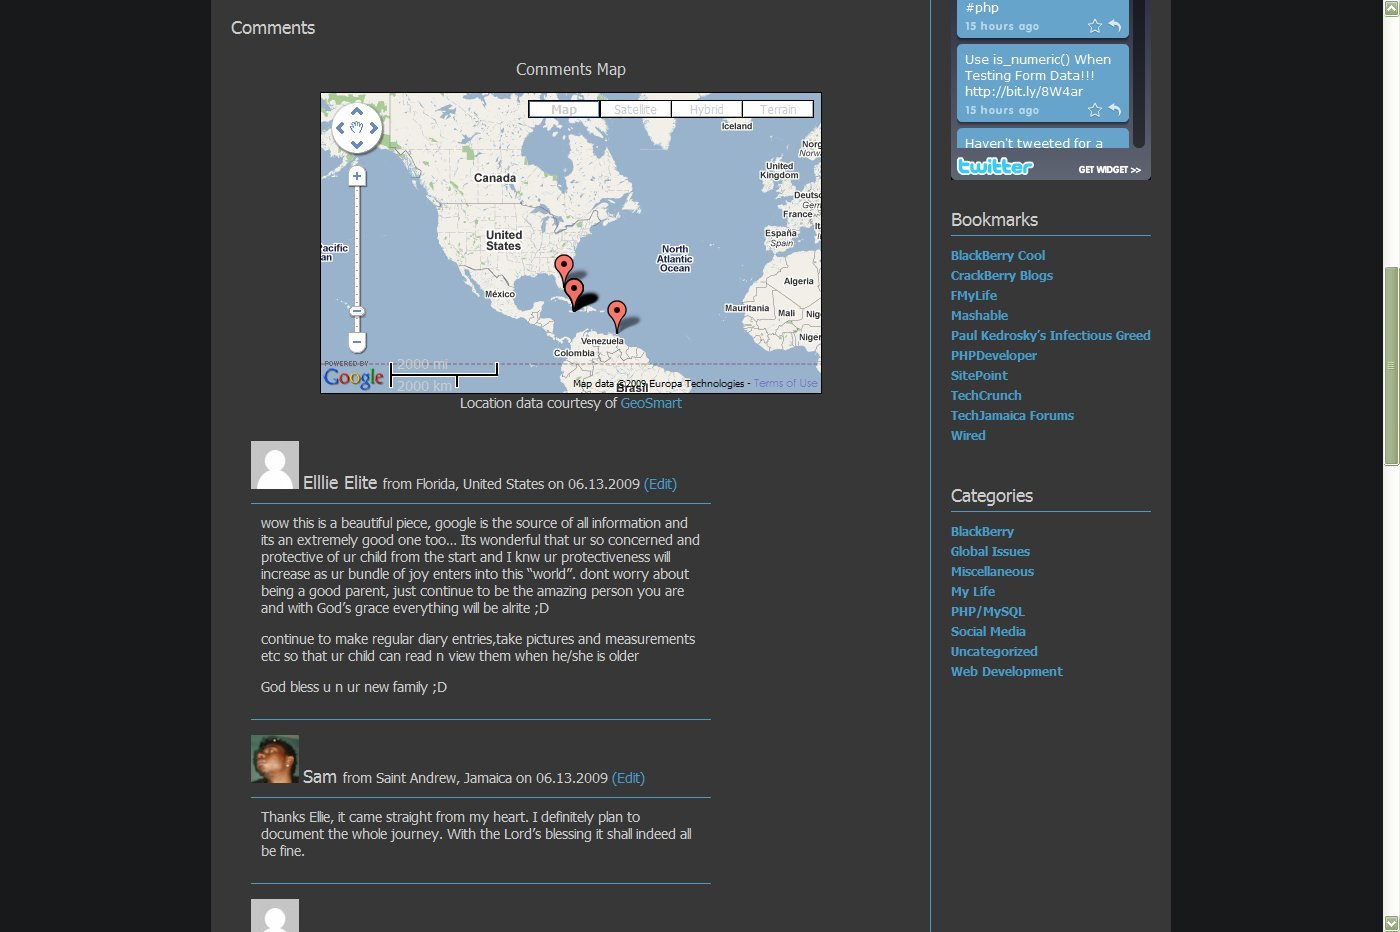 Post page with map and comment author location.